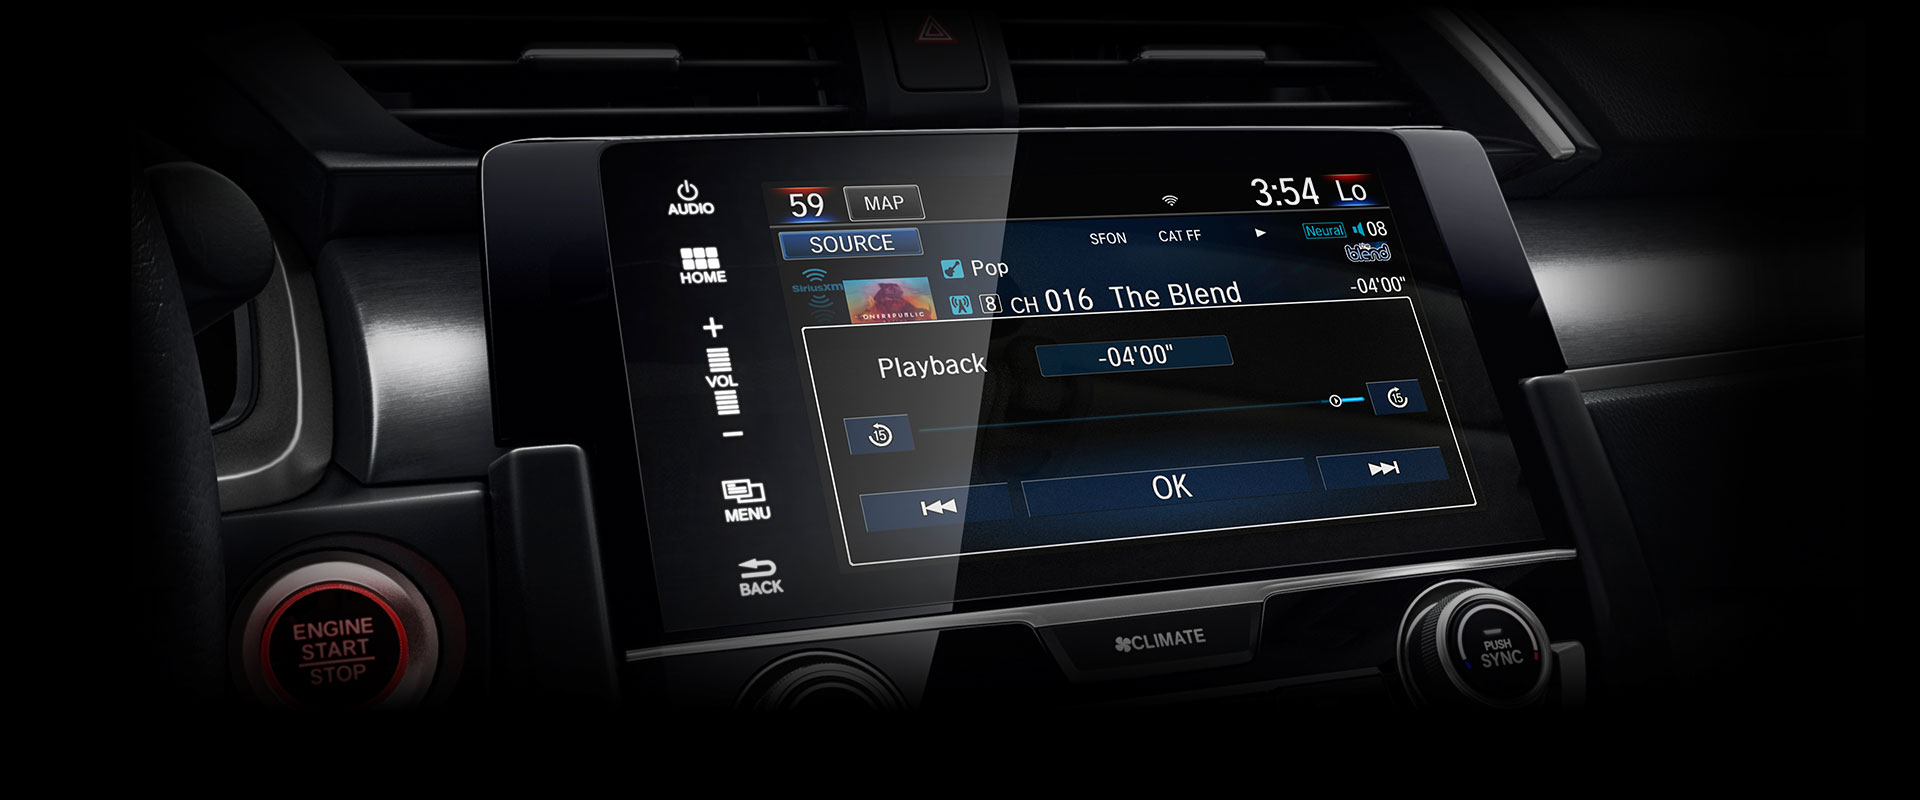 7-Inch Touchscreen